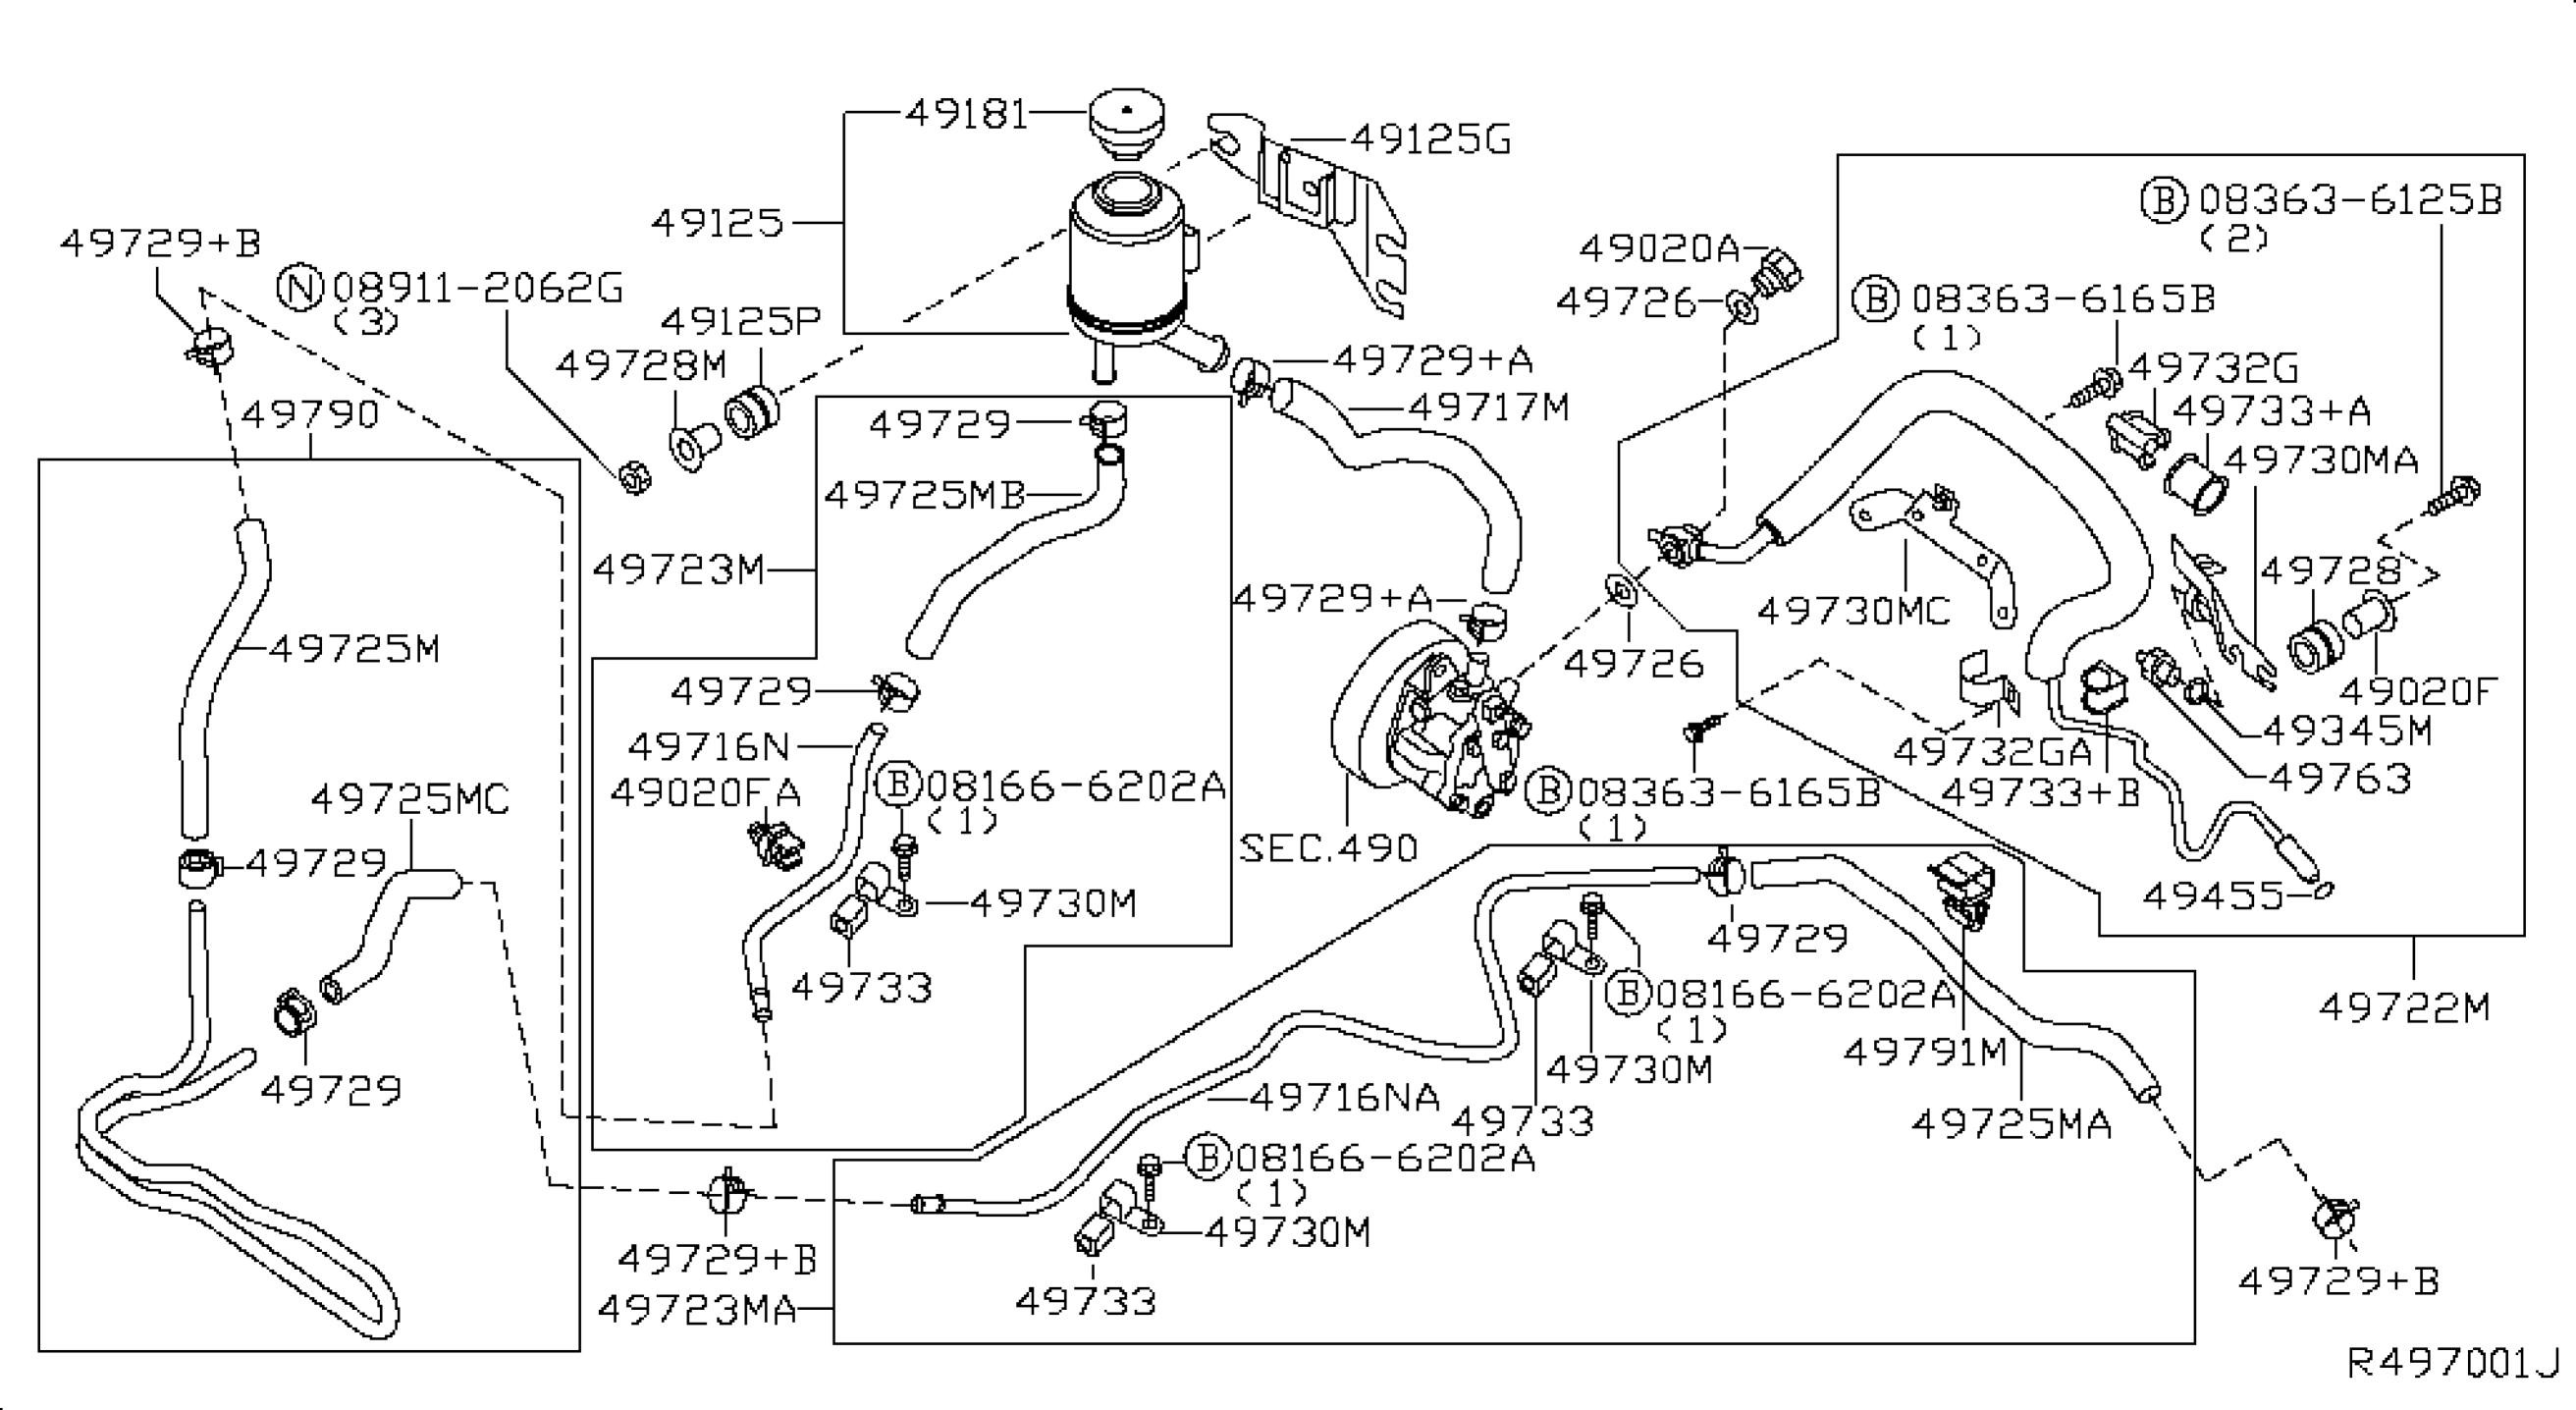 Power Steering Parts Diagram Cub Cadet Diagrams 126 Wiring 2005 Nissan Altima Sedan Oem Nemet Motors Of